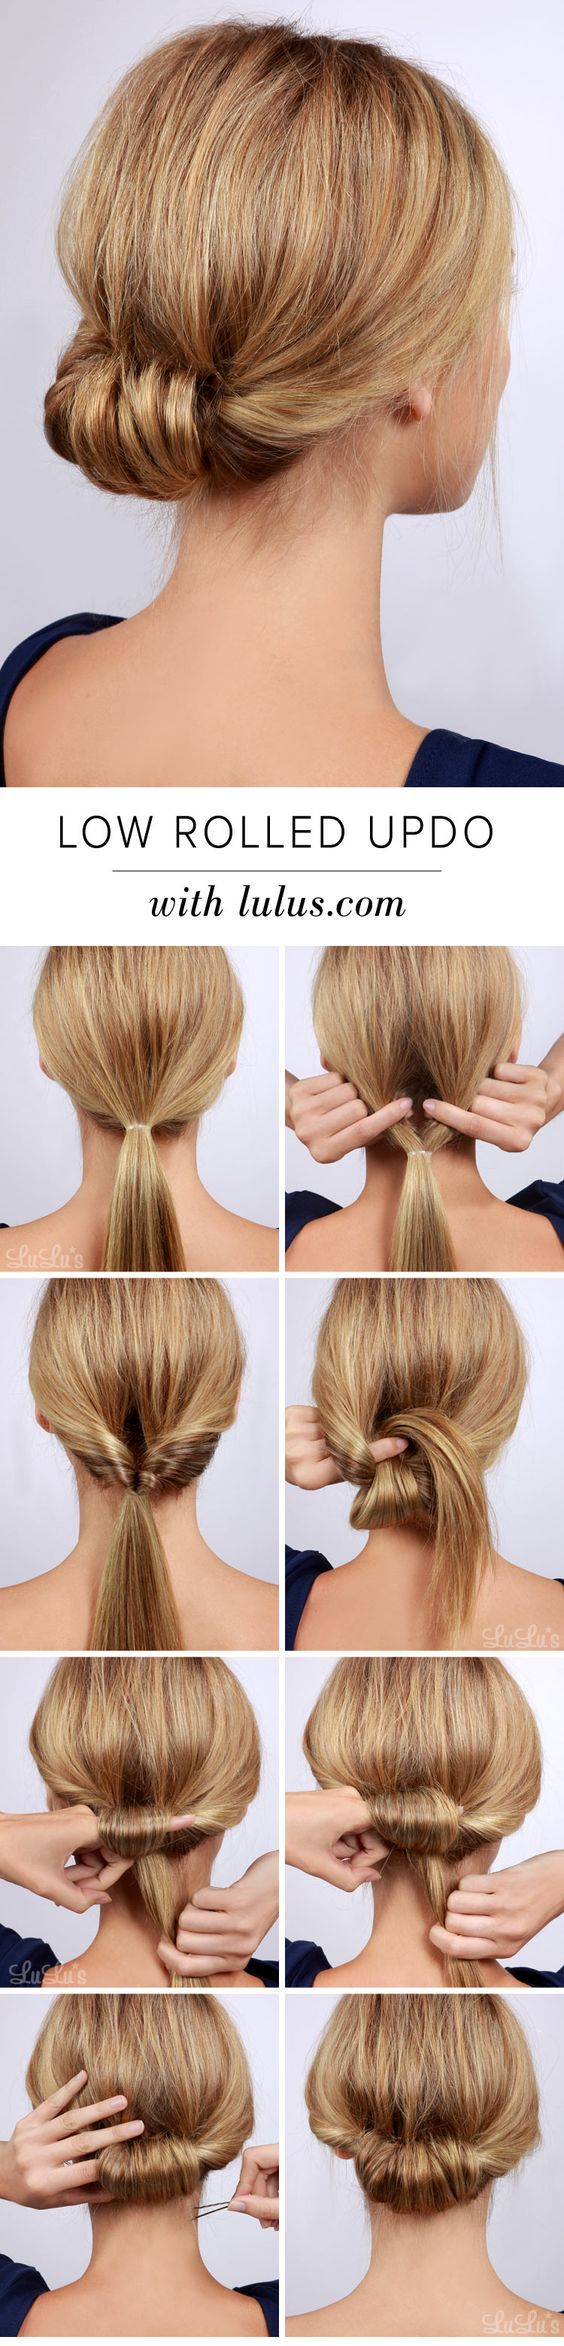 11 Simple Step by Step Updipt Tutorials for Beginners – Hair Wrapping Tutorials